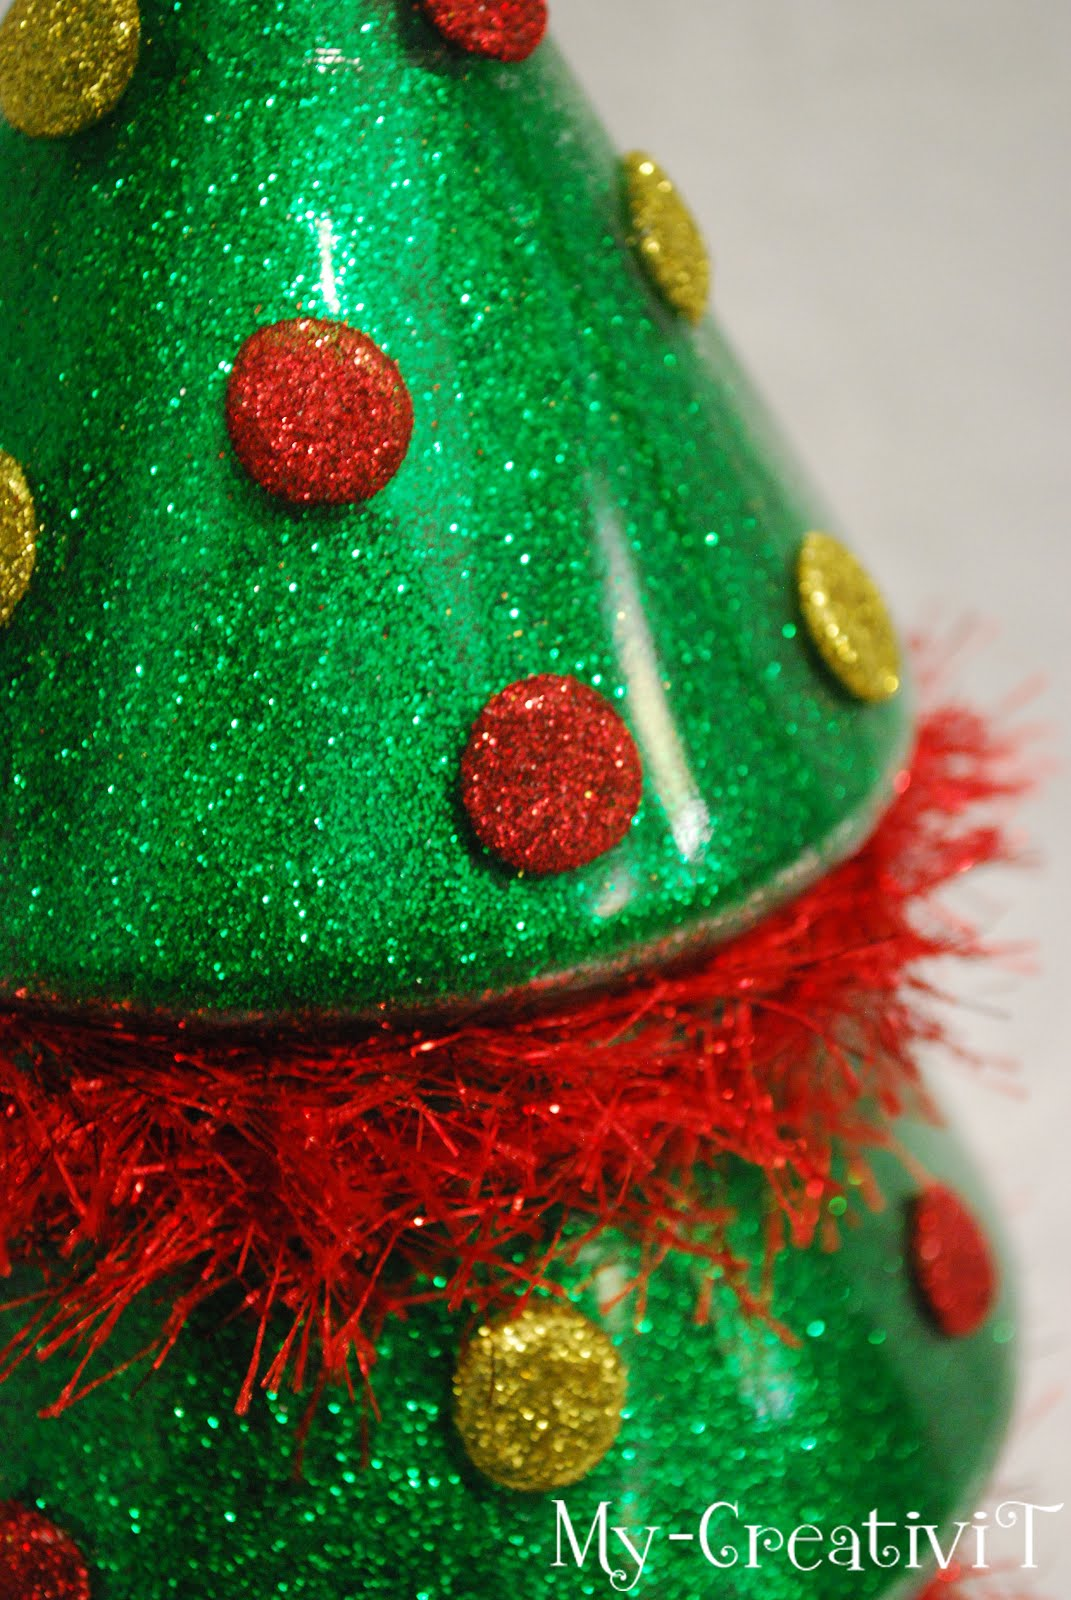 My creativit diy glitter christmas tree